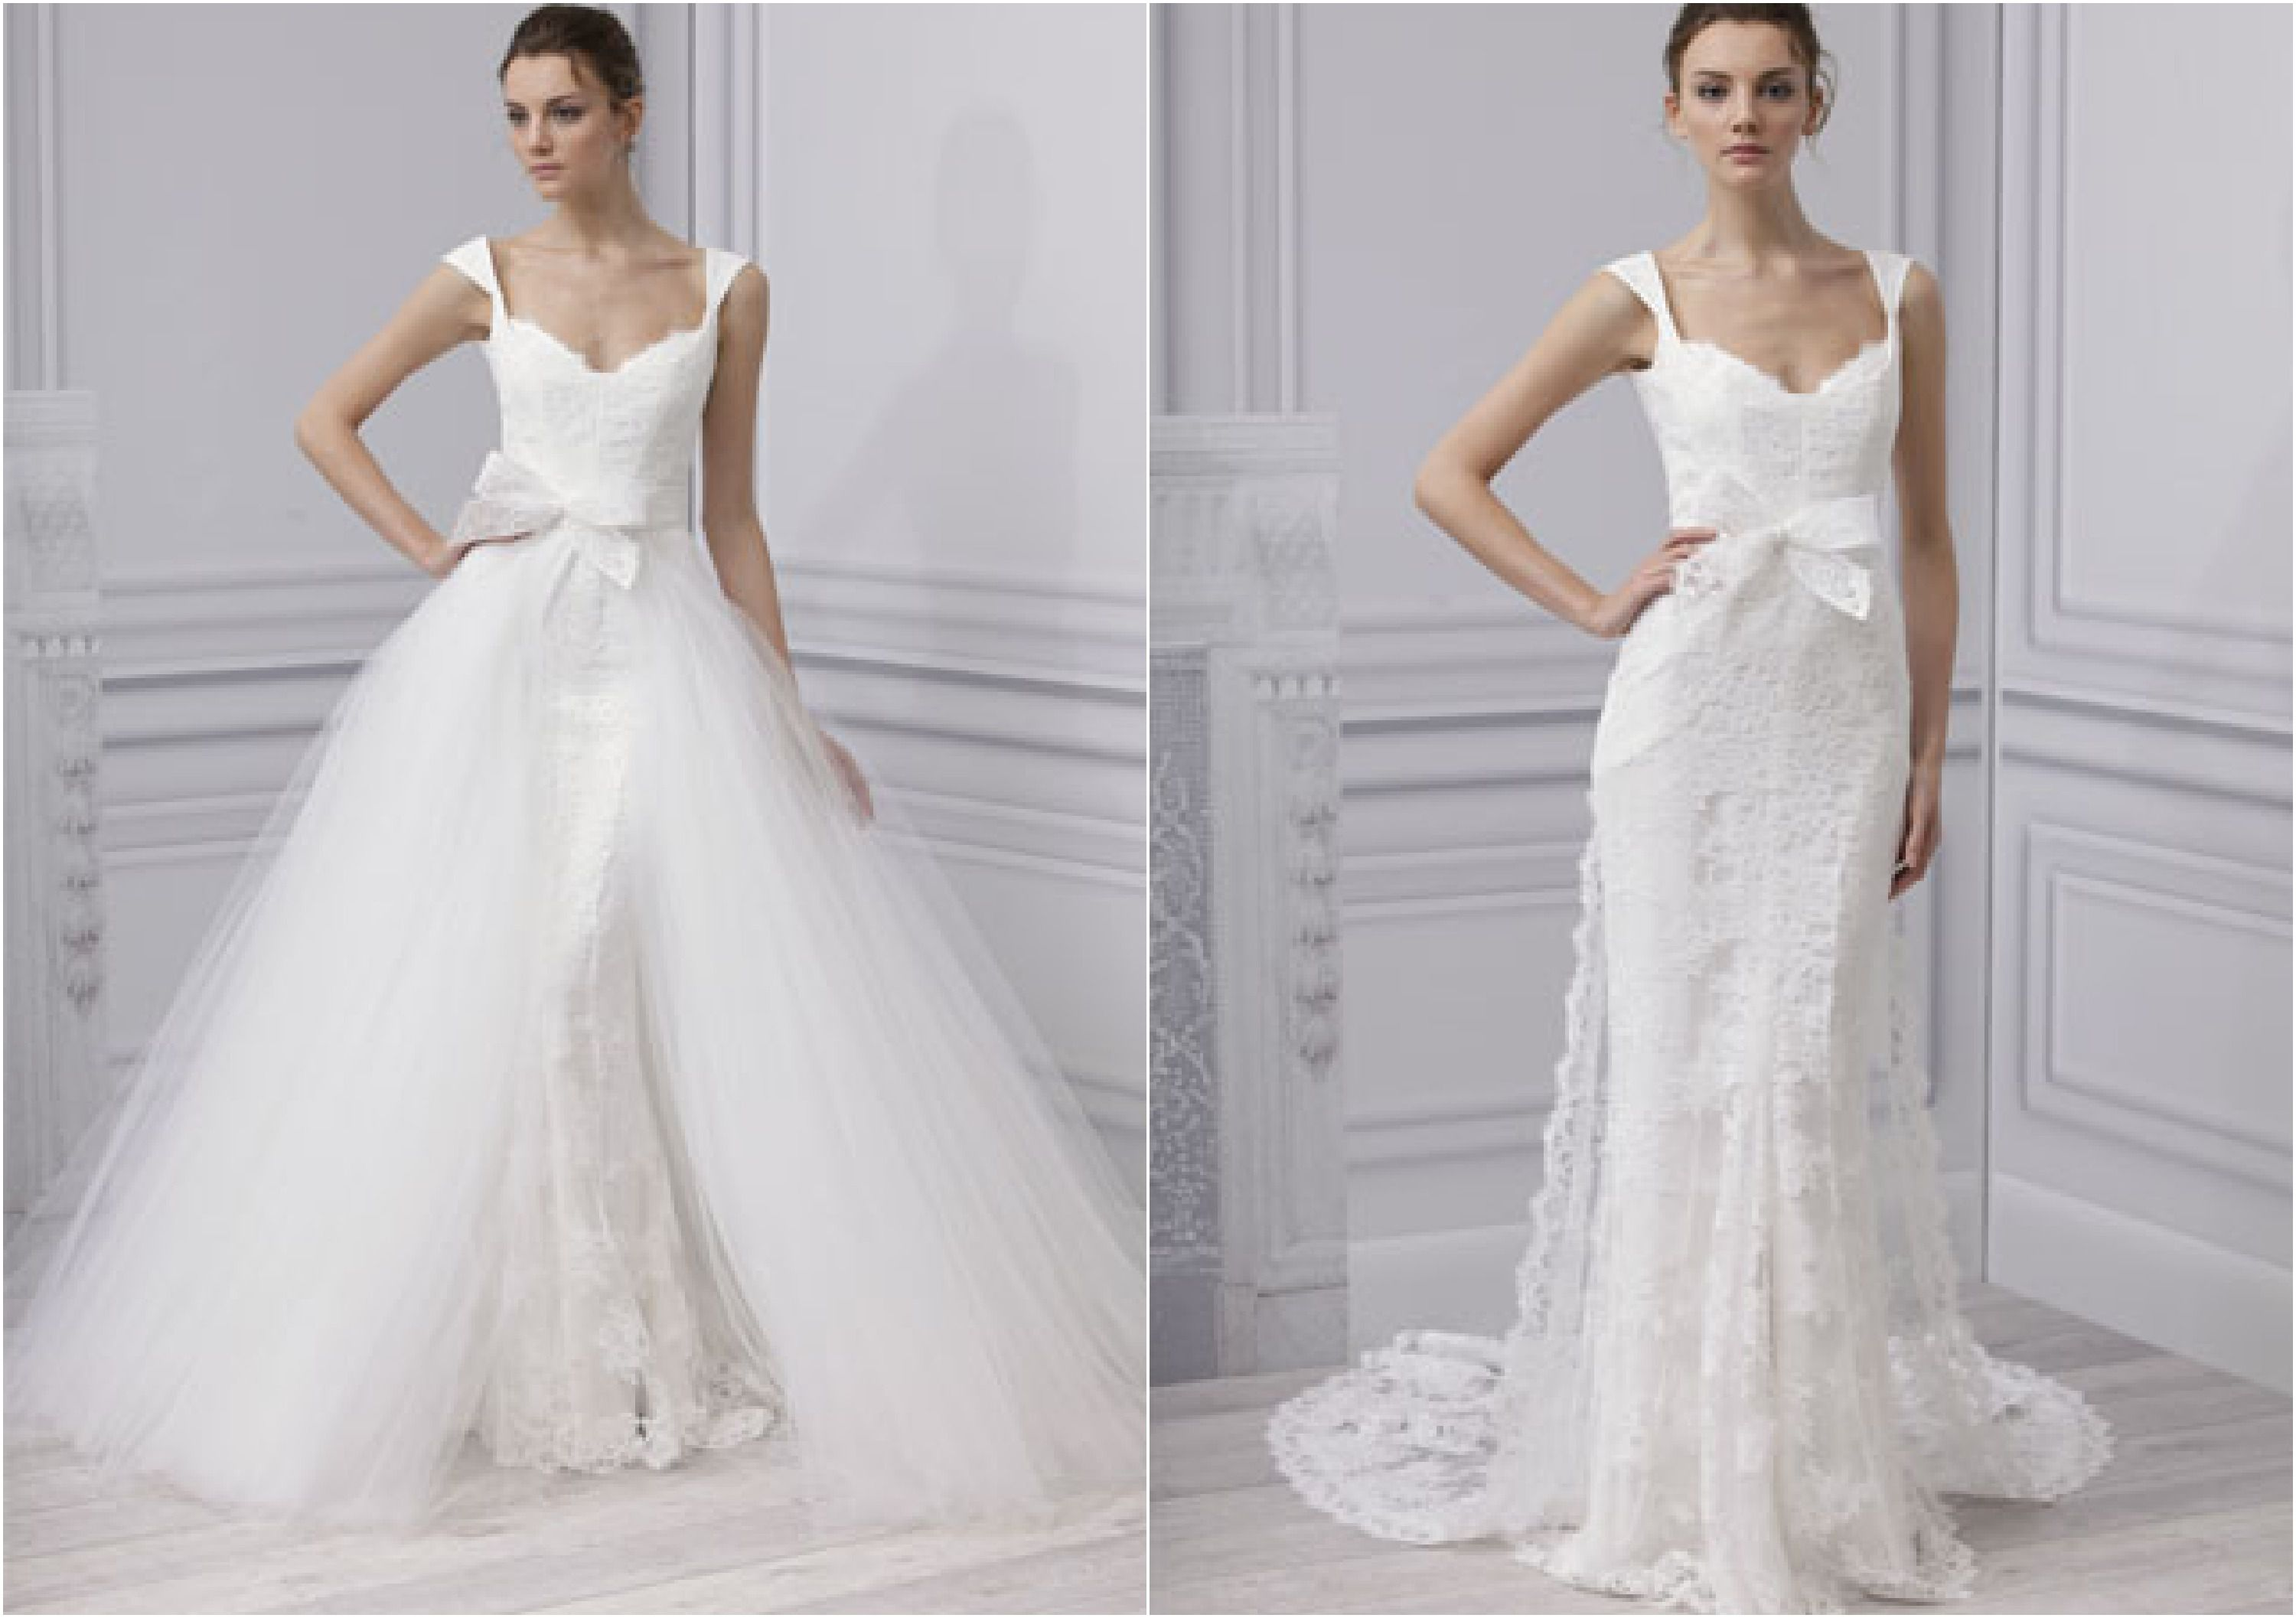 Wedding Dresses With An Overskirt - Rustic Wedding Chic